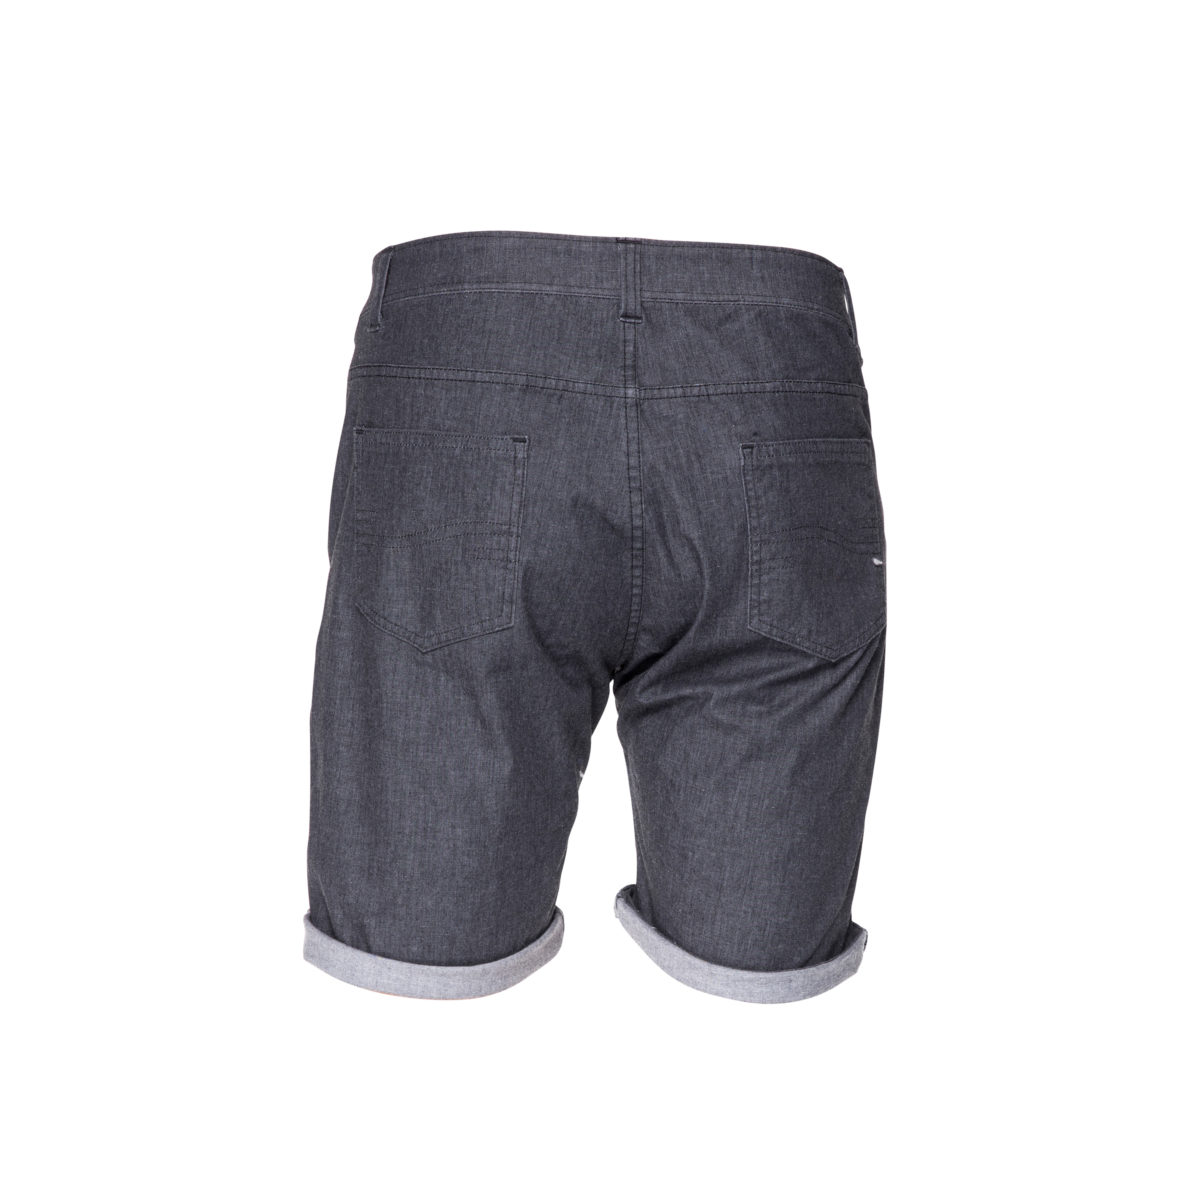 black jeans shorts for climbing